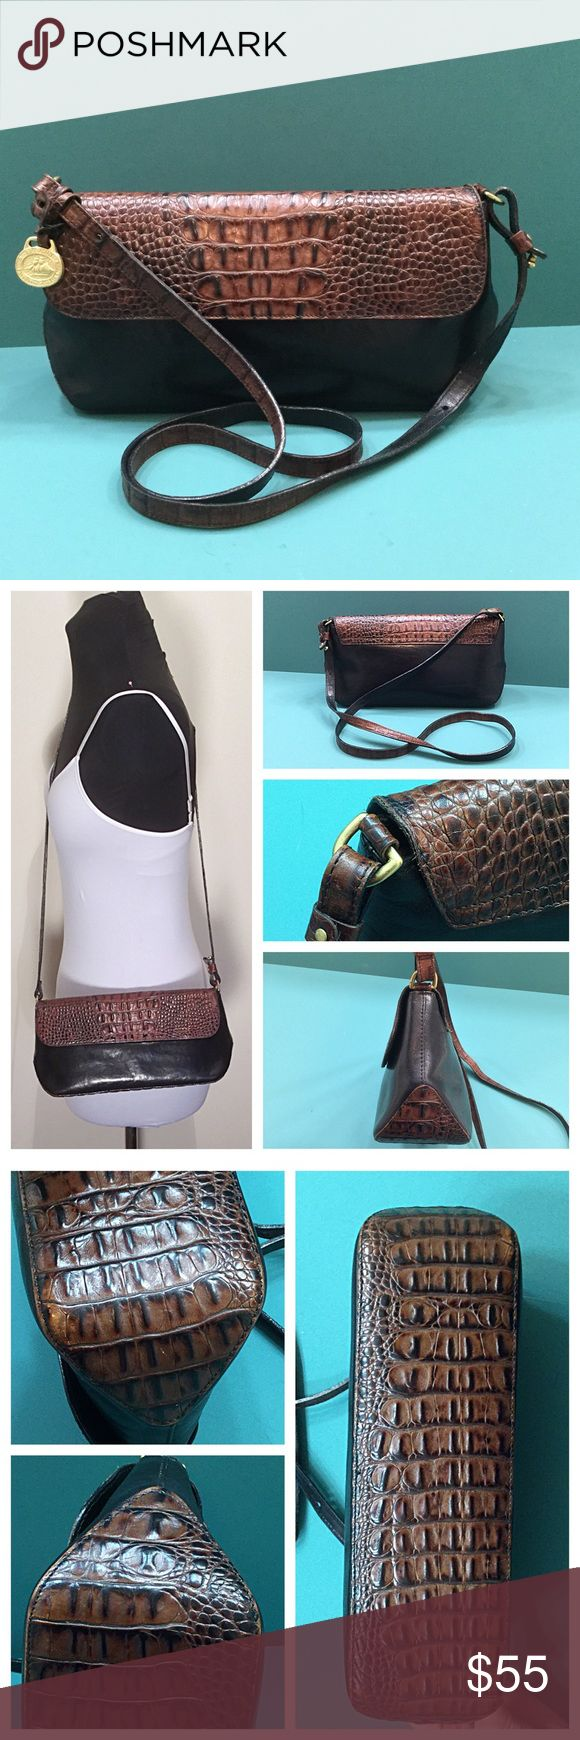 "Vintage Brahmin Two Tone Crossbody 🚫Trades/Holds🚫 Brahmin Crossbody *  Black/pecan croc-embossed leather *  ""Eye' perfectly placed on flap, embossing is well-defined *  Front flap w/ dual magnetic closure *  Classic 'chamois"" lining w/ zip + 2 slip pockets, key clip *  About 11.5"" x .5 x 3, strap drop=22"" (can be shortened about 1.5"") *  Pre-loved & vintage so some visible wear, mainly one corner, minor scratches/scuffs, lining has light soiling/pen dots, freshly conditioned Plz ask ?s if…"